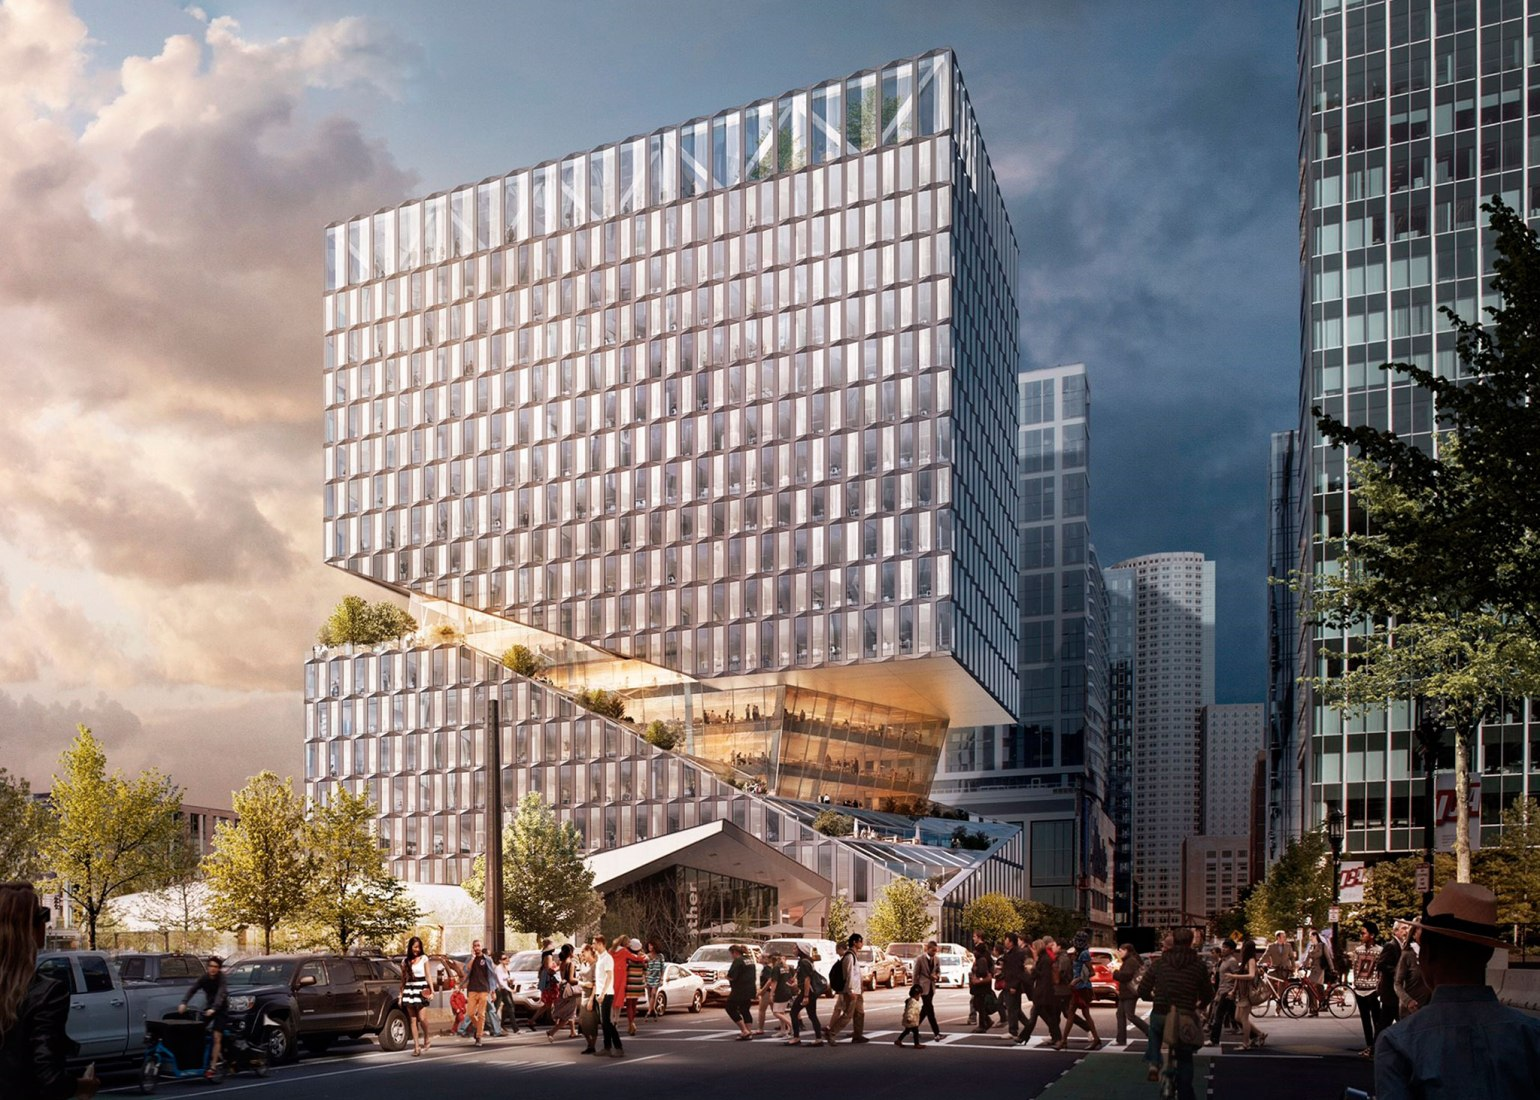 Rendering of 88 Seaport Boulevard, a mixed-use retail and office project designed by OMA and developed by WS Development in Boston's Seaport neighborhood. Image © OMA. Rendering by Bloom